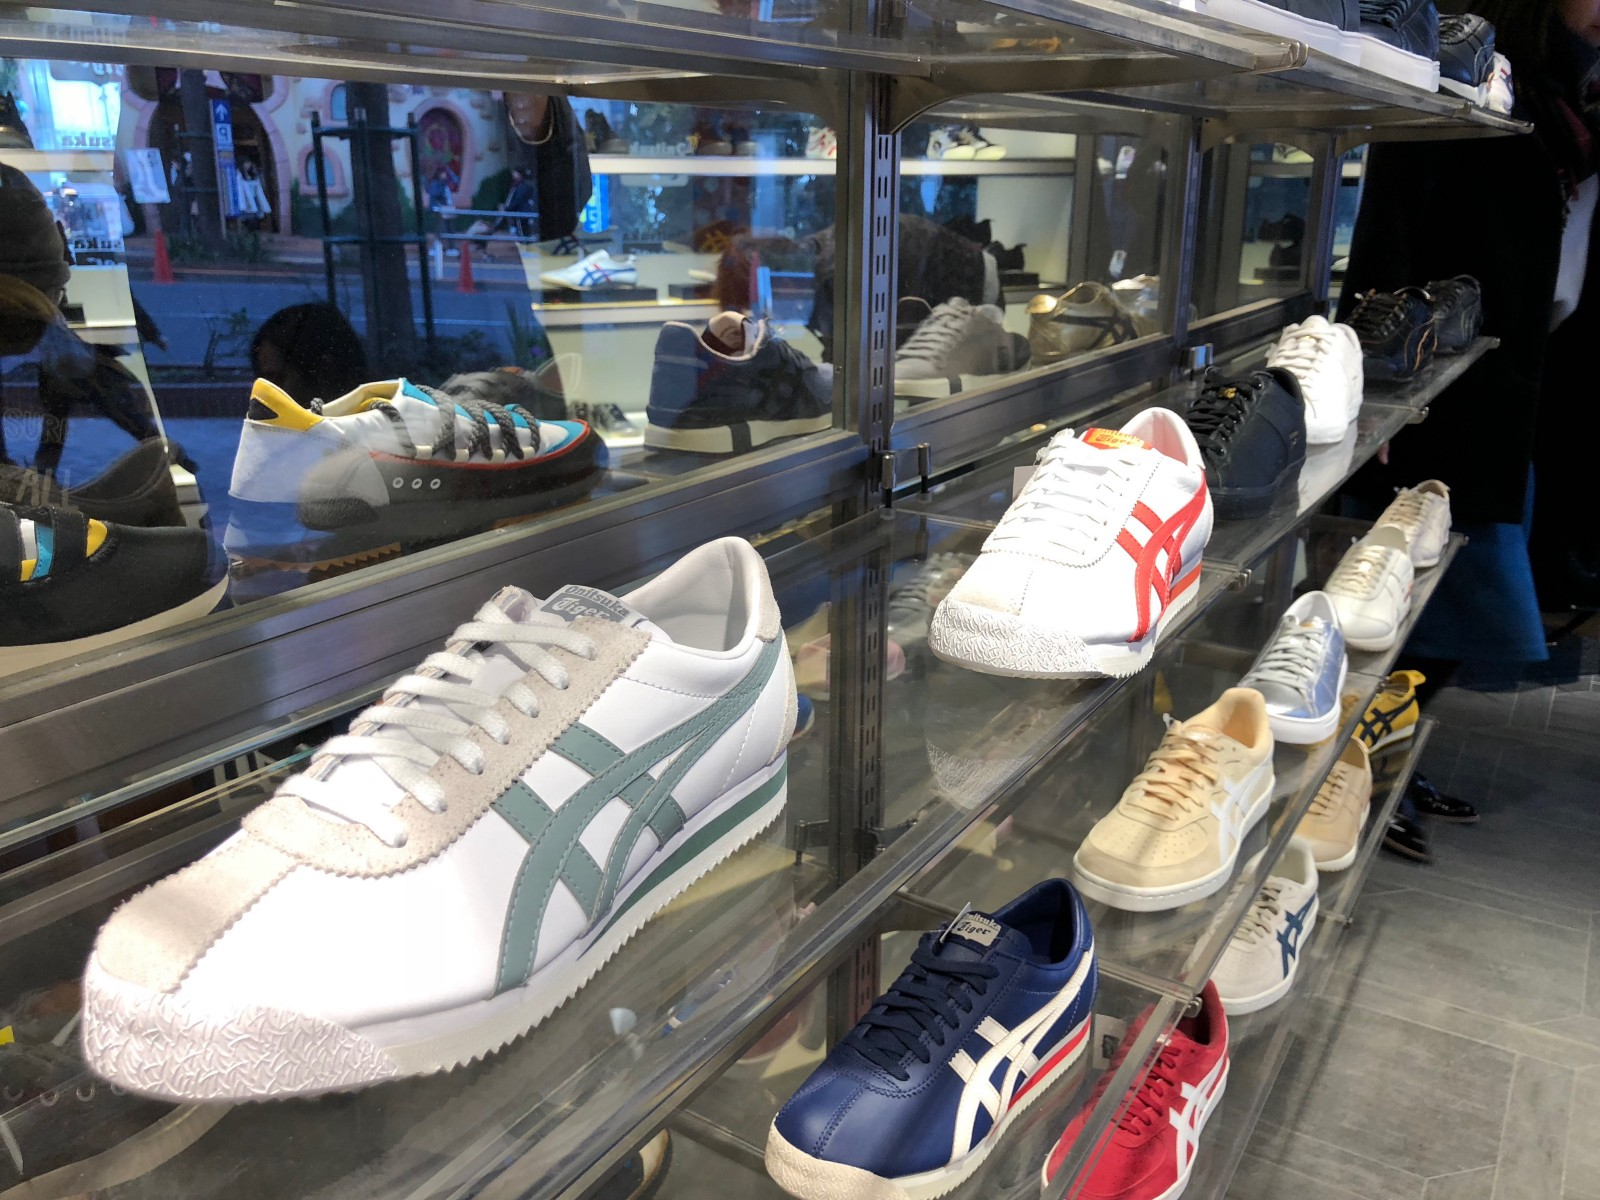 dfac0c2ea98b5b In 2015 Onitsuka Tiger Shibuya opened in the center of Shibuya as the 2nd  largest Onitsuka Tiger store. You may get Japan limited models of Onitsuka  Tiger ...